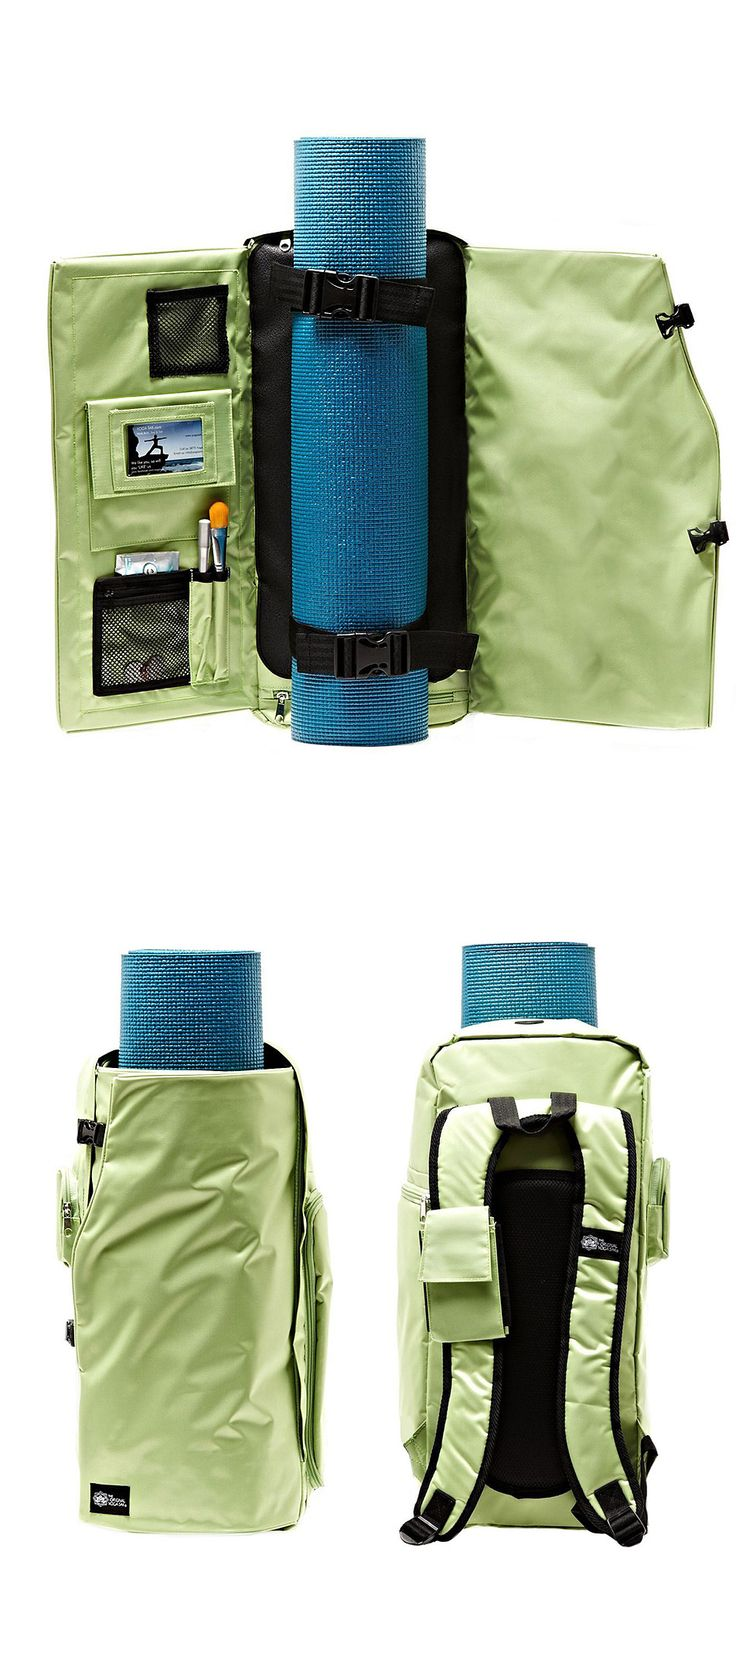 All In One Yoga Backpack - Multiple pockets to hold all your essentials.